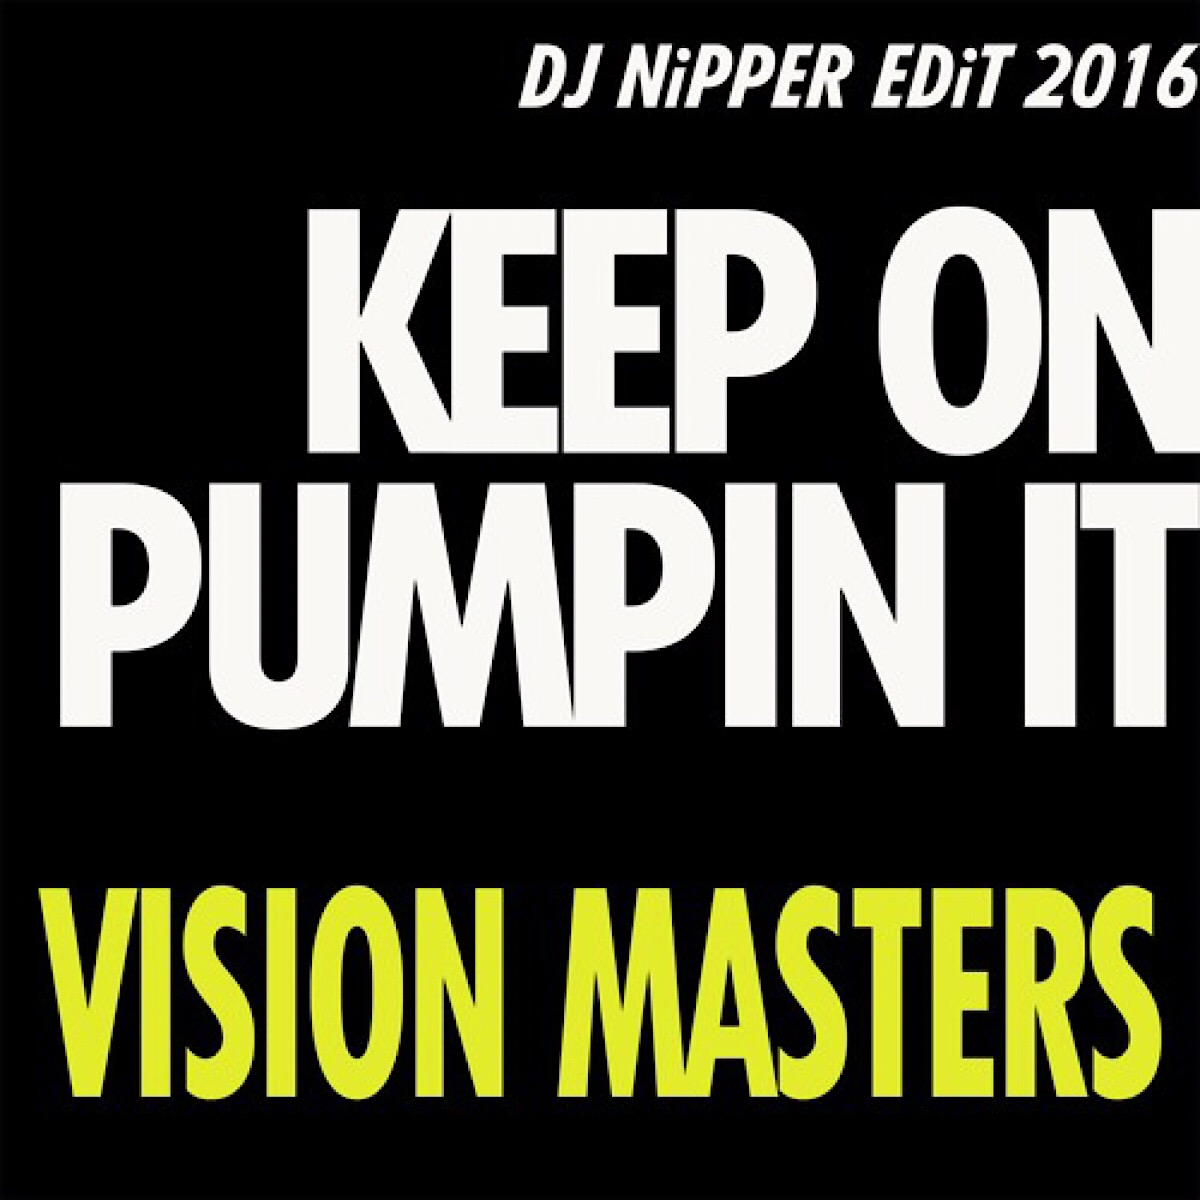 Visionmasters - Pumpin It Up